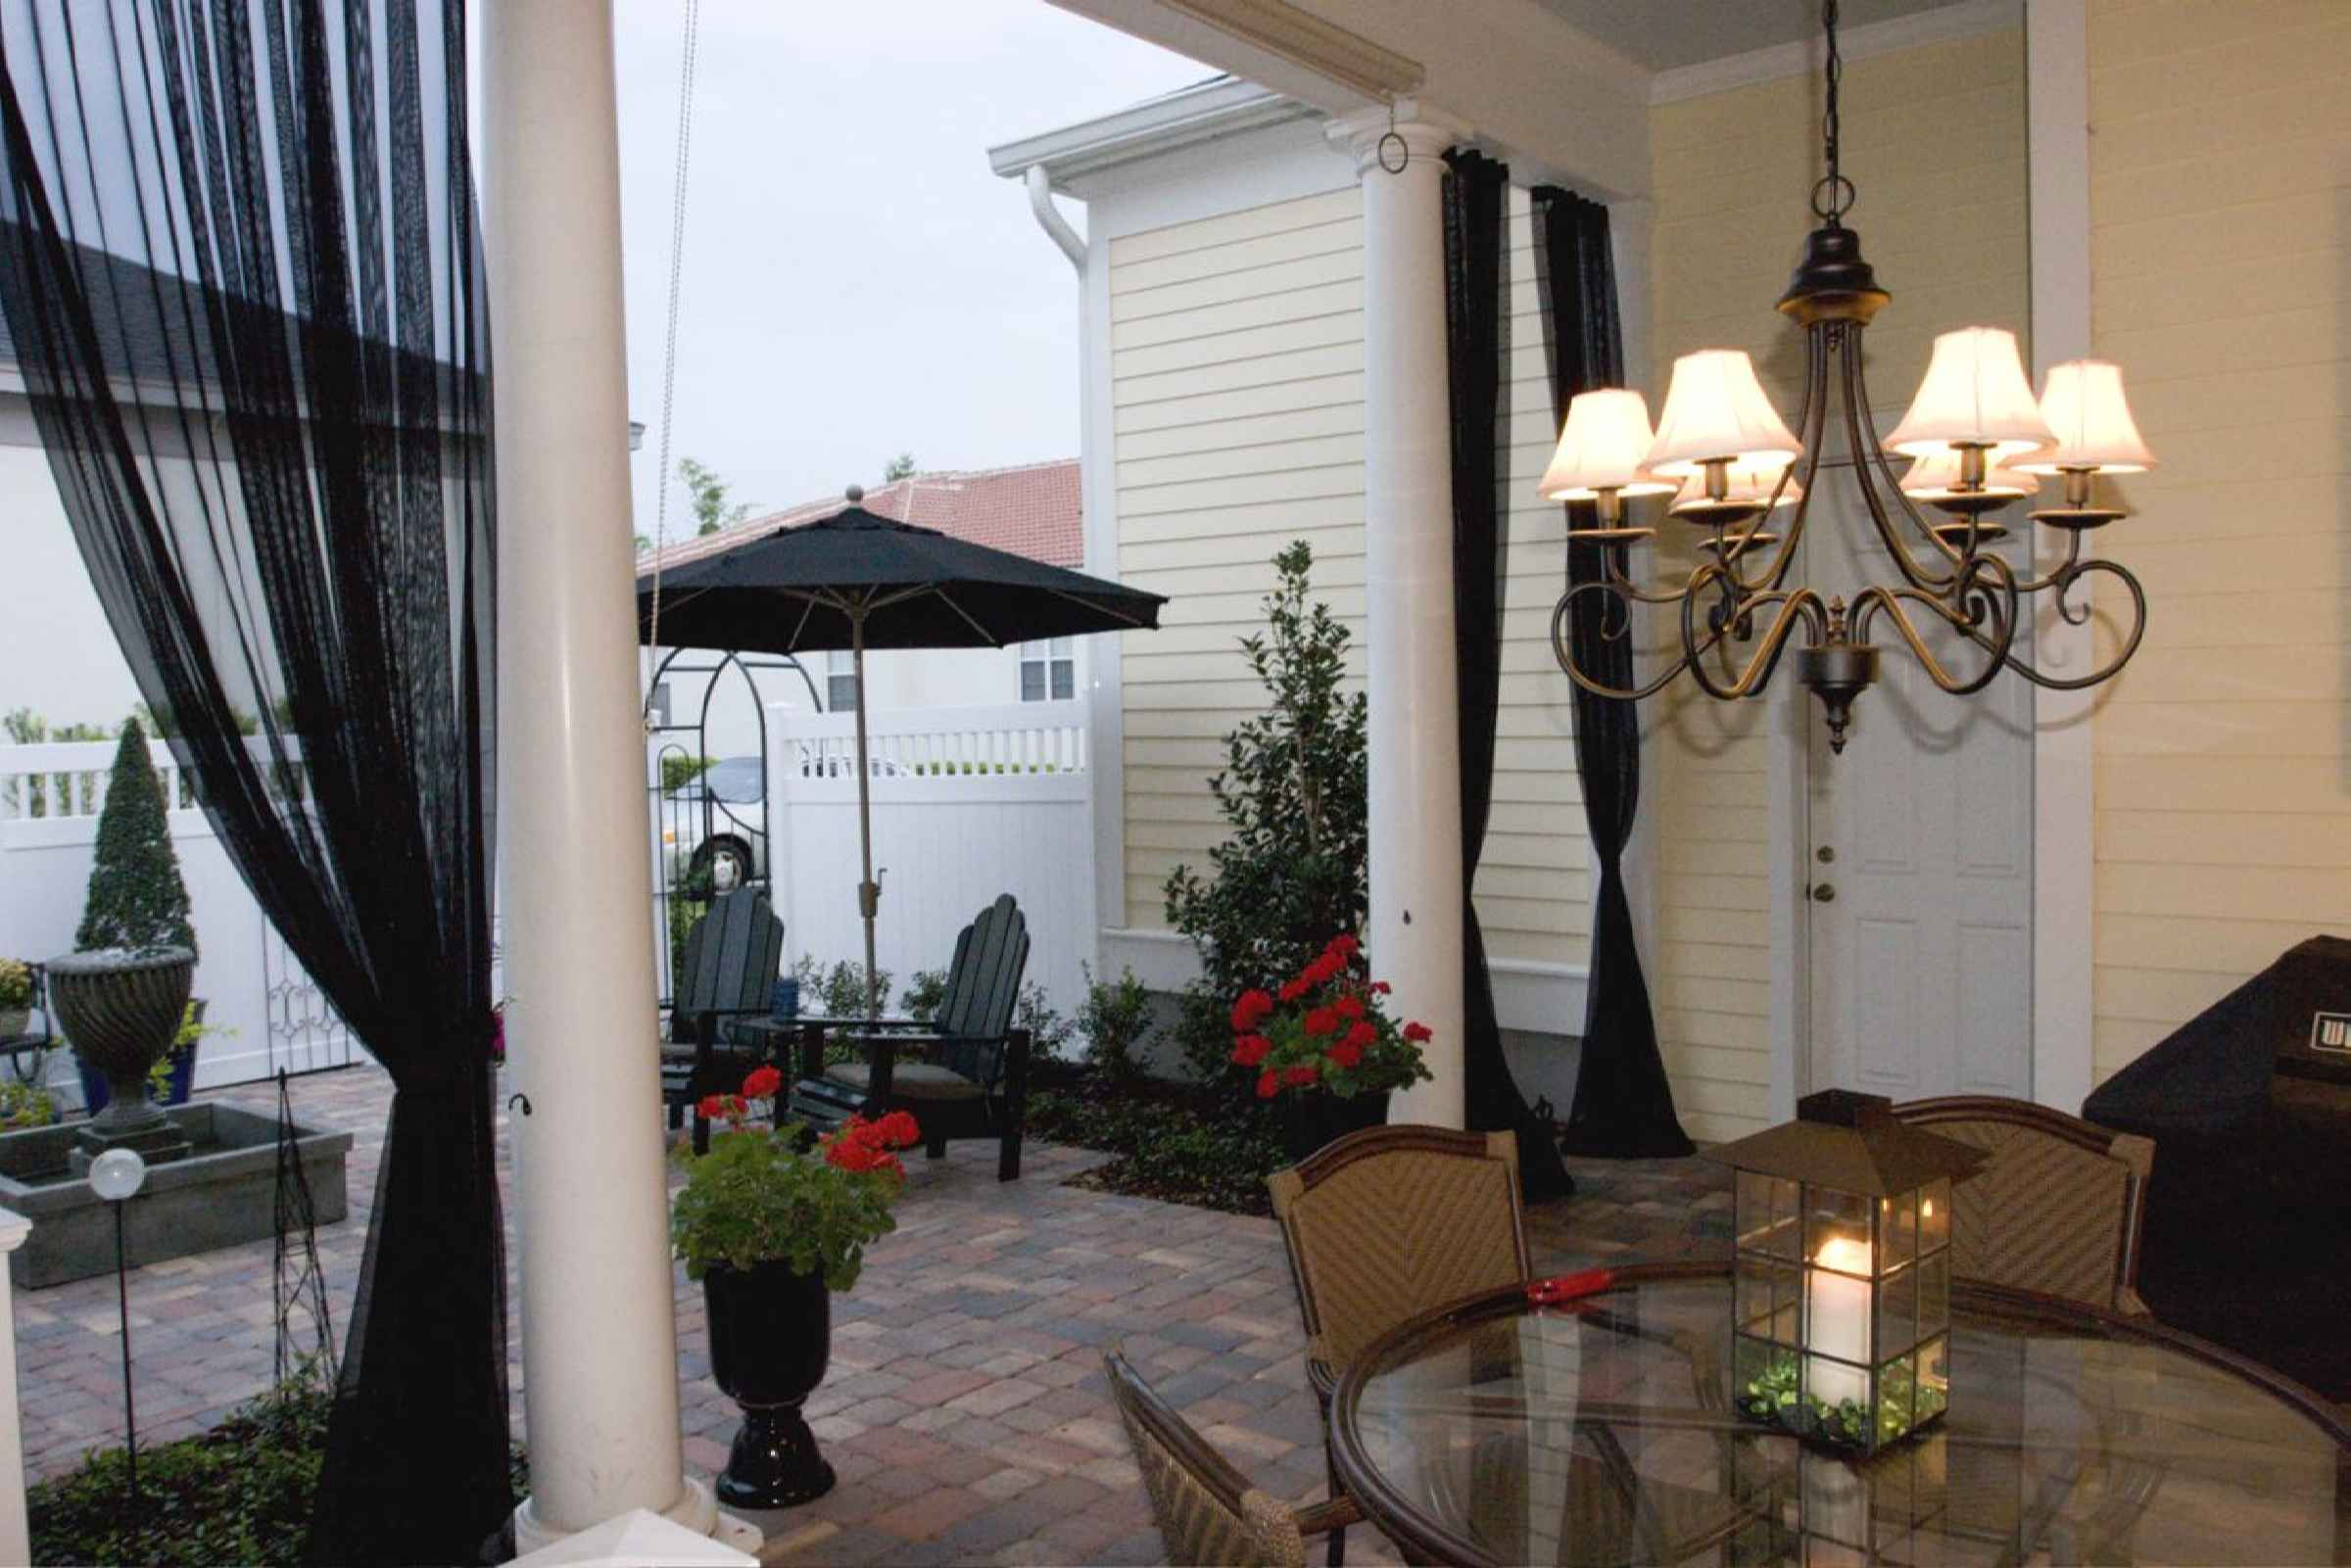 Mosquito Netting Curtains For Patio Home Design Ideas and